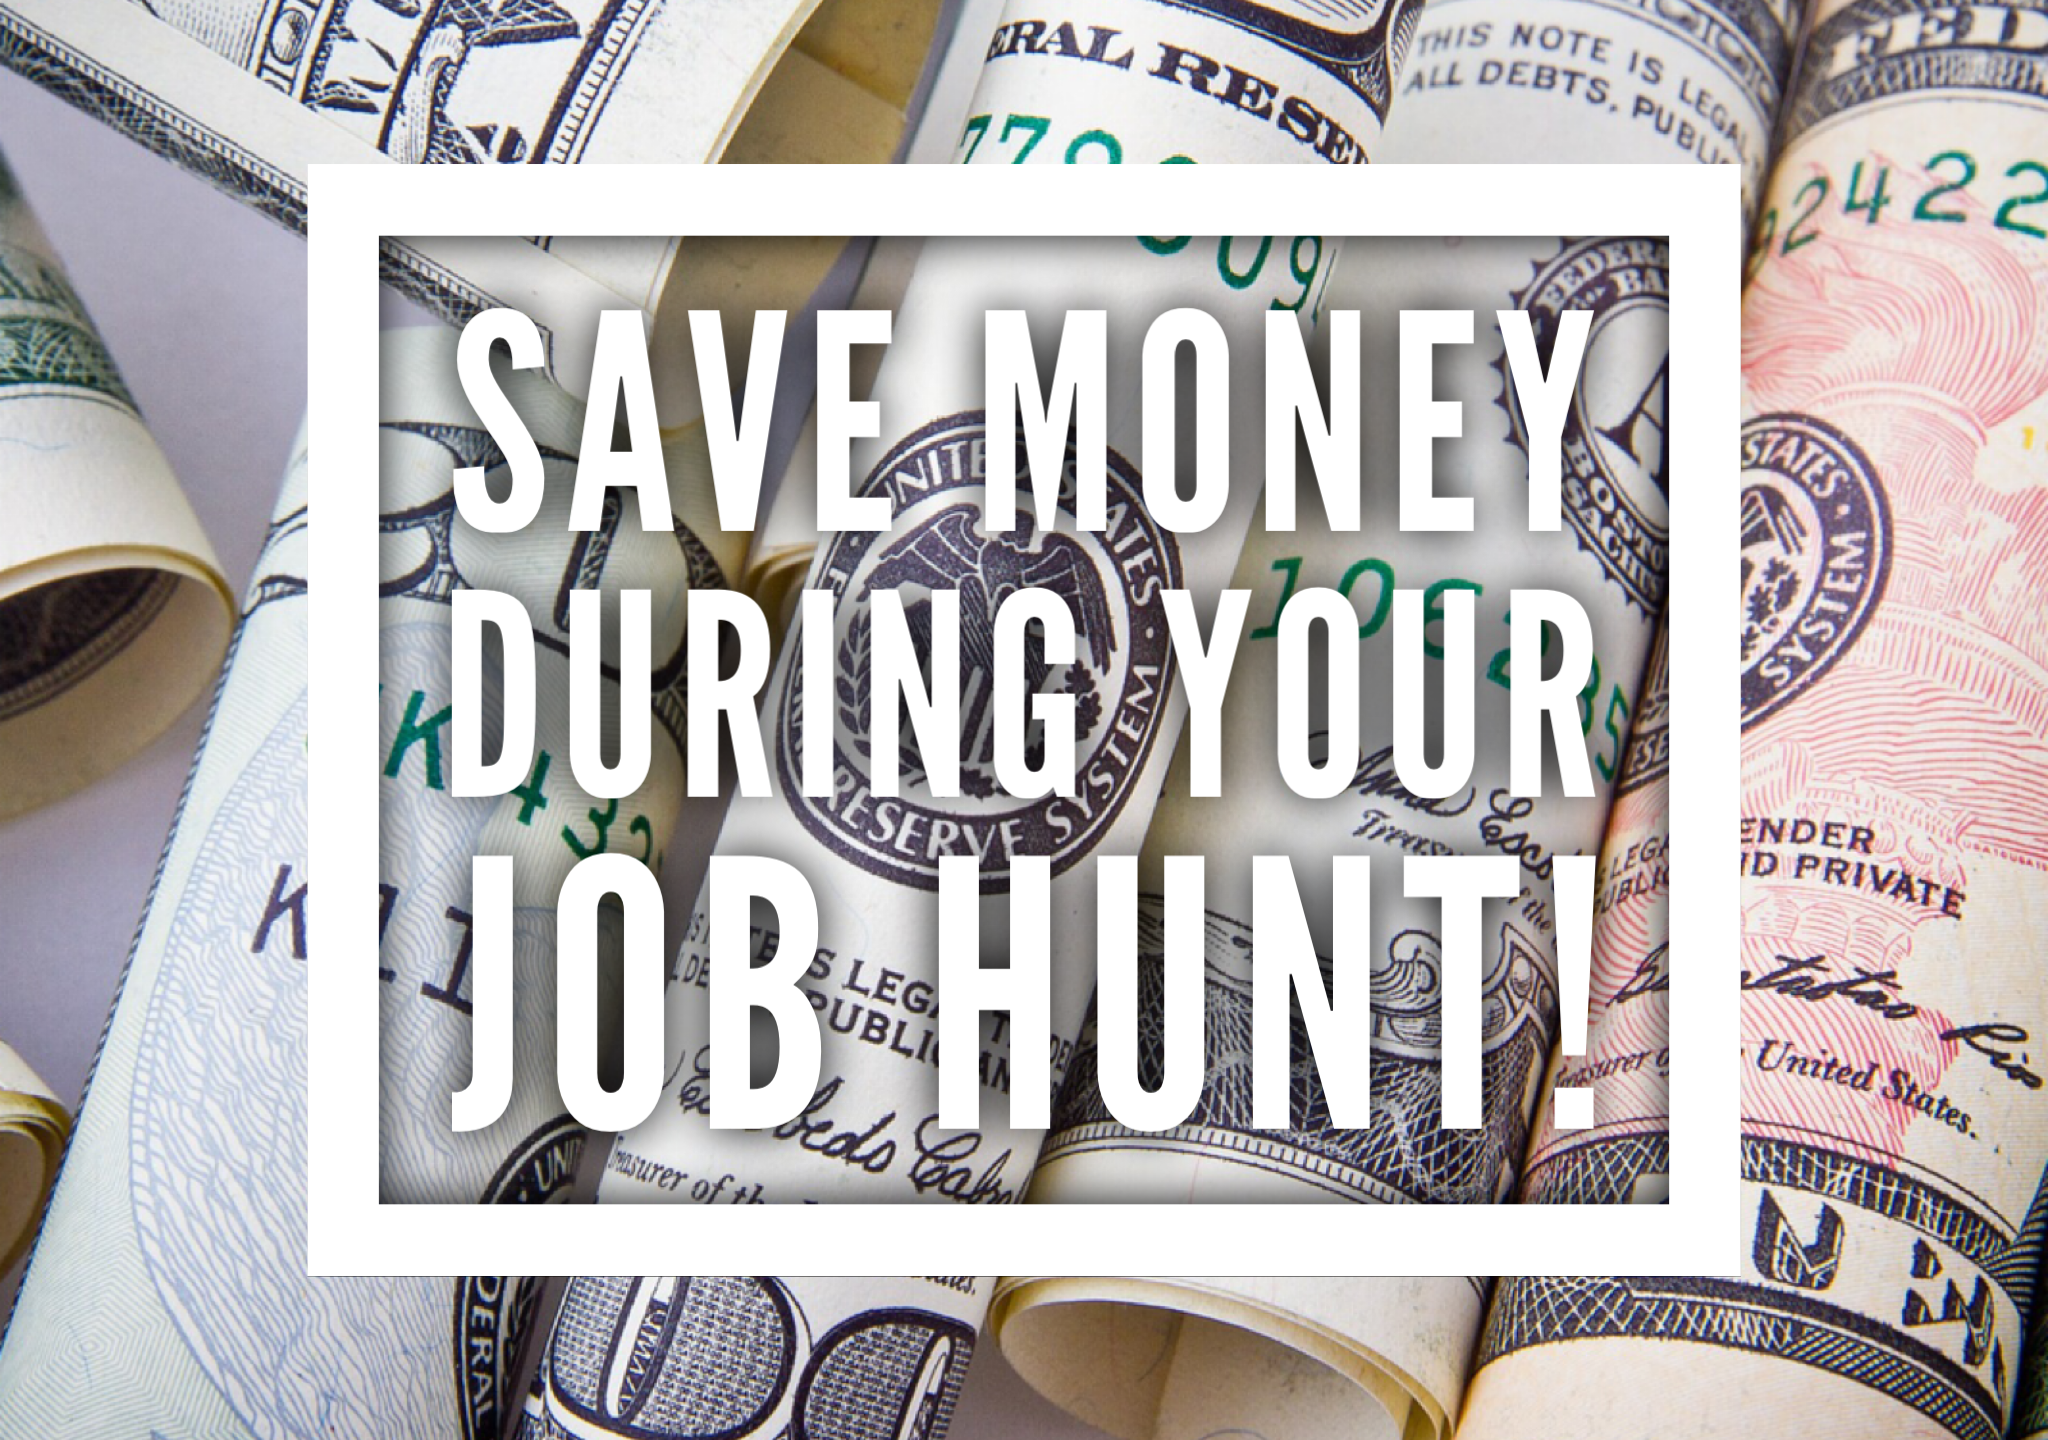 Save money during job search That Purple Book career advice